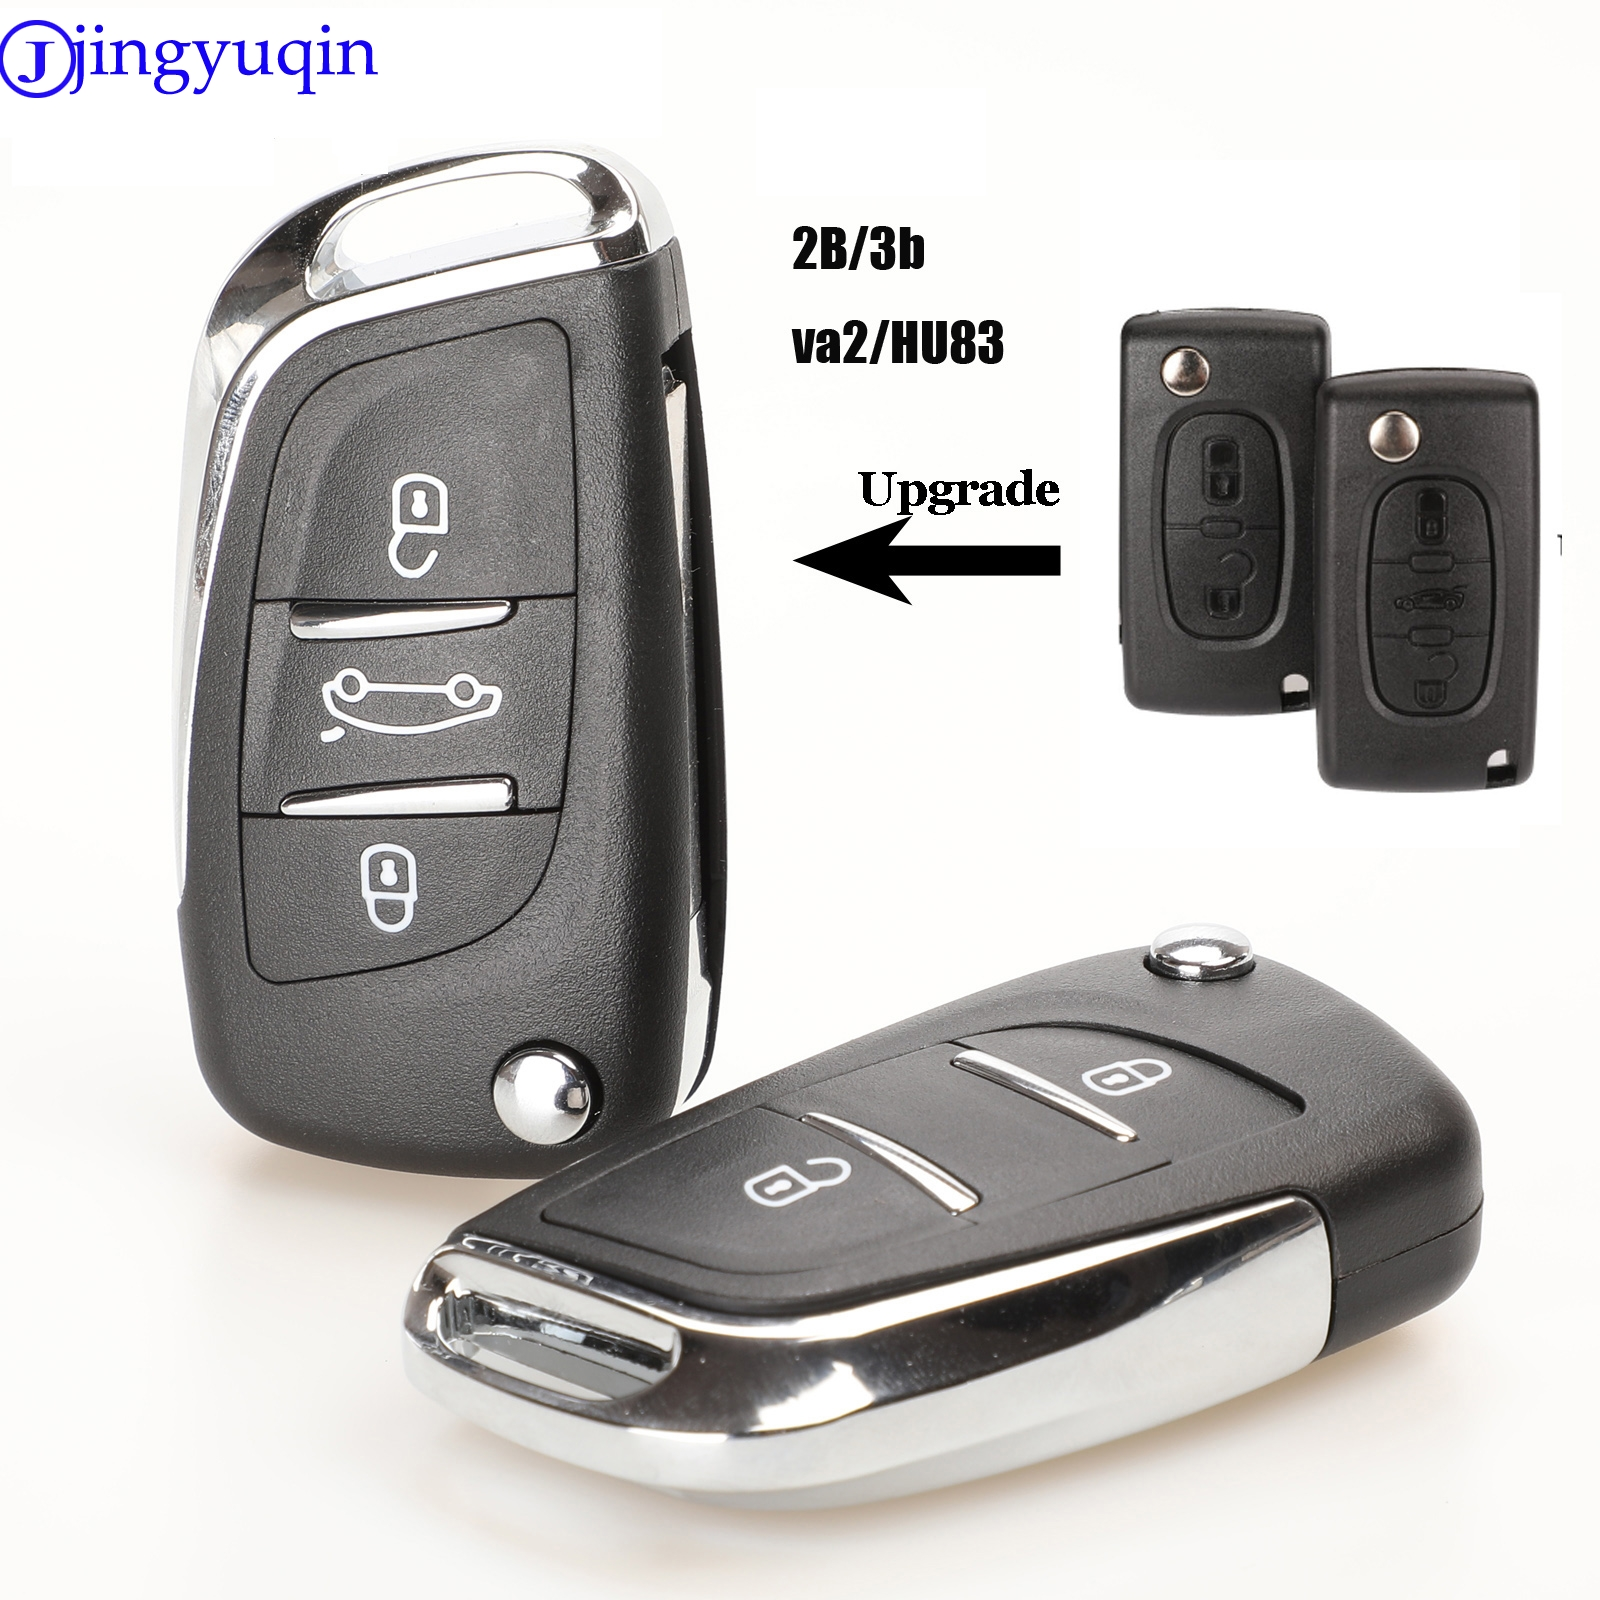 jingyuqin CE0536 Modified Flip Remote <font><b>Key</b></font> Shell For <font><b>Peugeot</b></font> 307 408 <font><b>308</b></font> for Citroen C-Triomphe C-Quatre C3 C4L C5 image